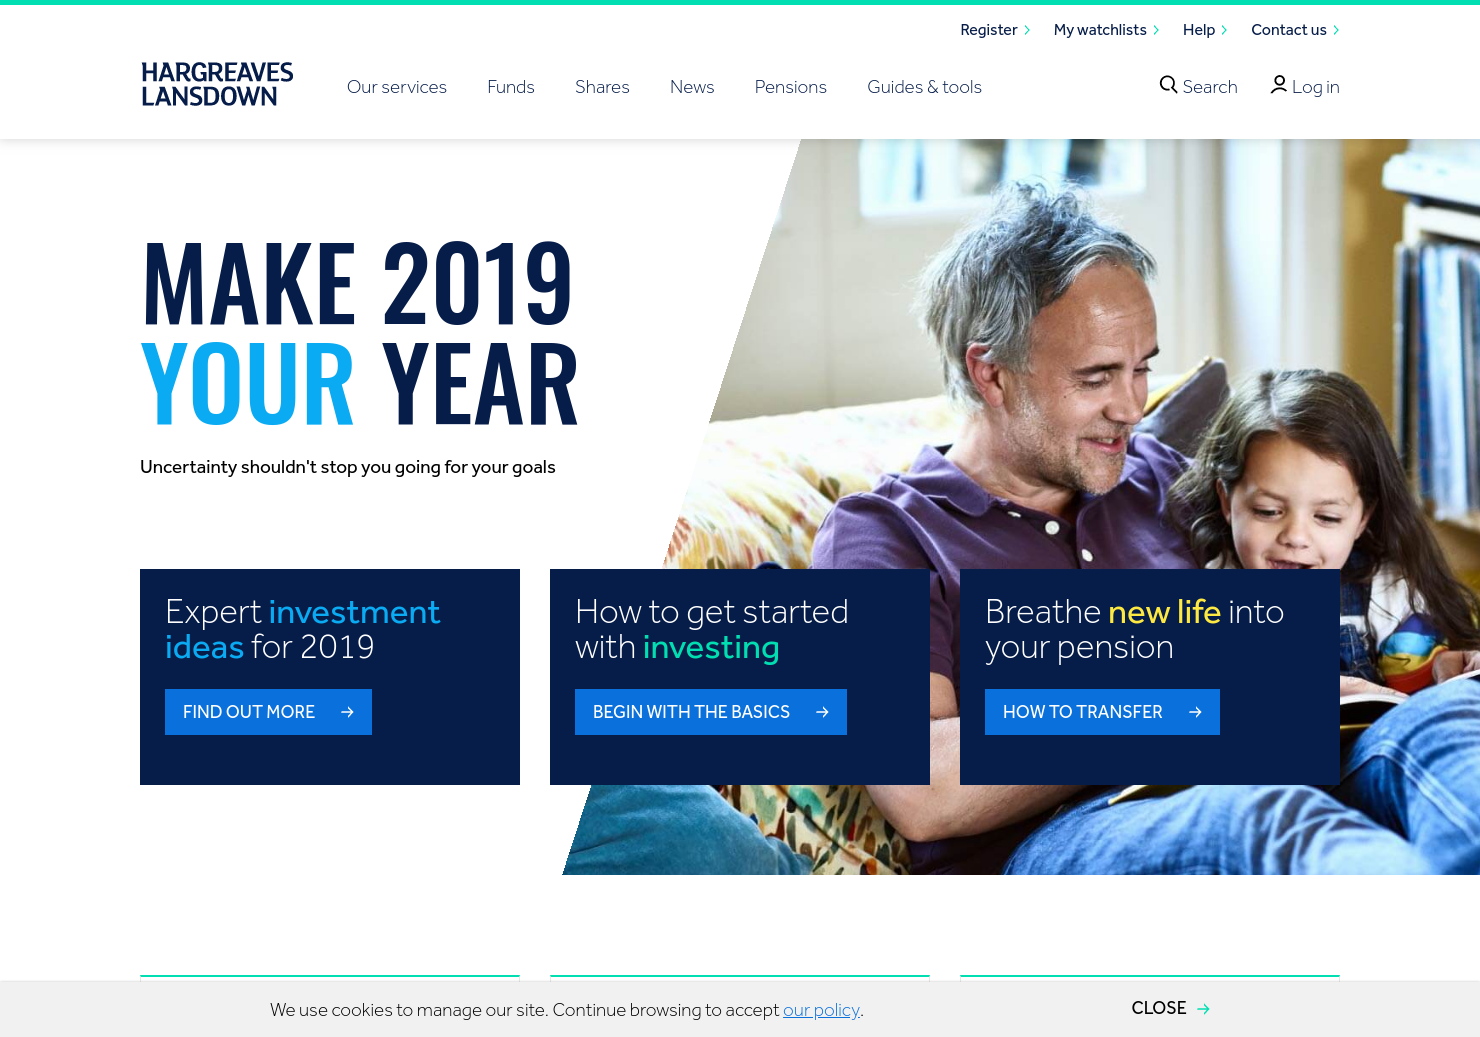 Hargreaves Lansdown Home Page